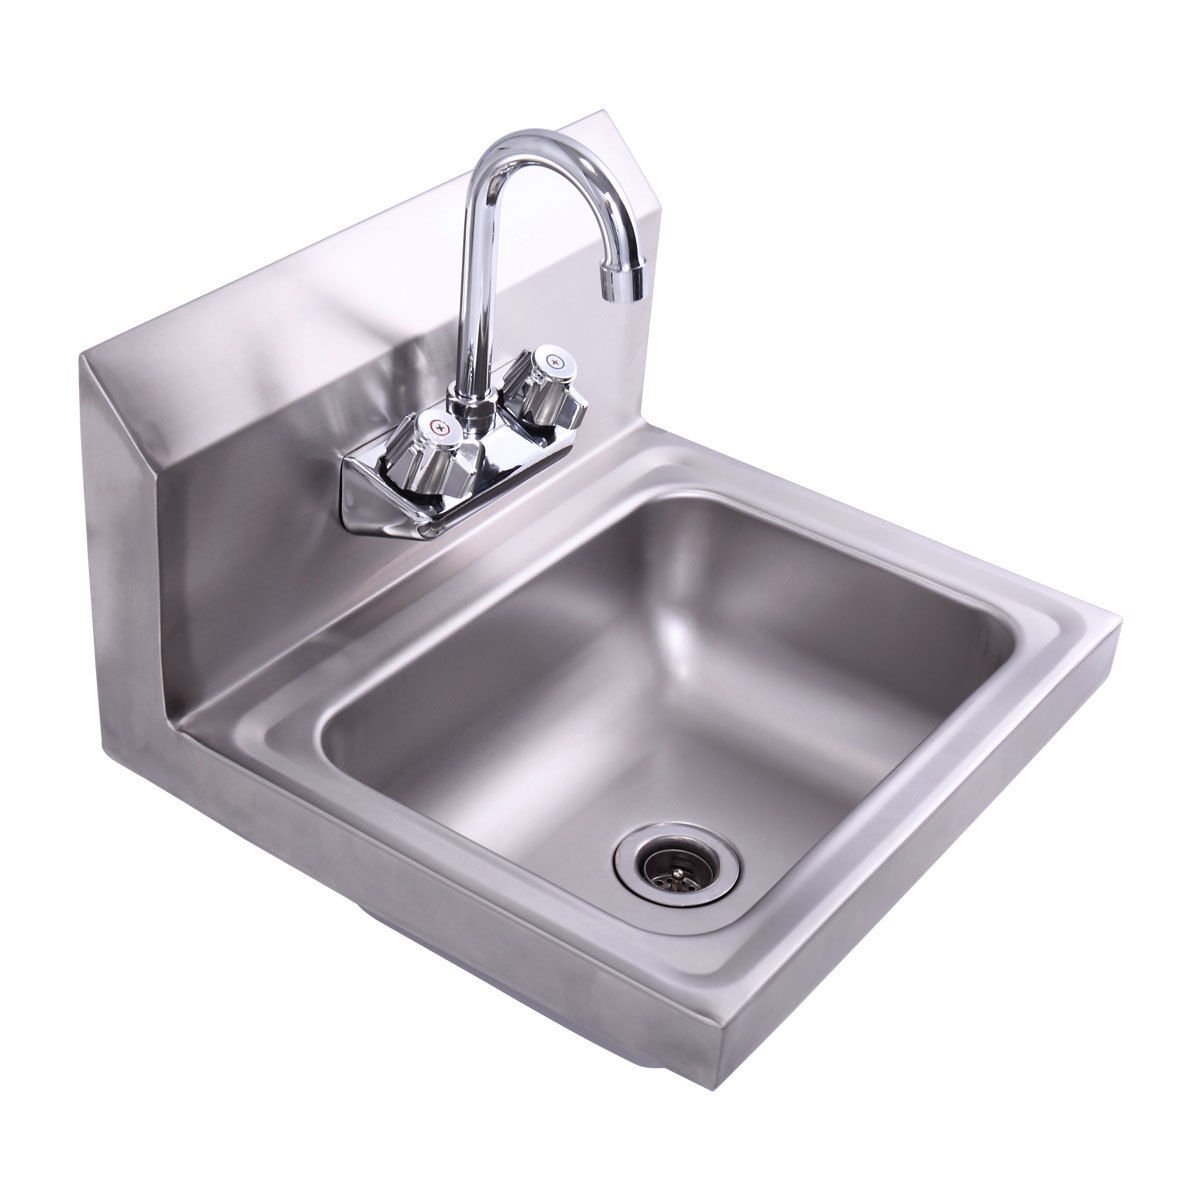 LAZYMOON Commercial Stainless Steel Wall Mounted NSF Hand Sink w/Faucet 17'' x 15'' Silver